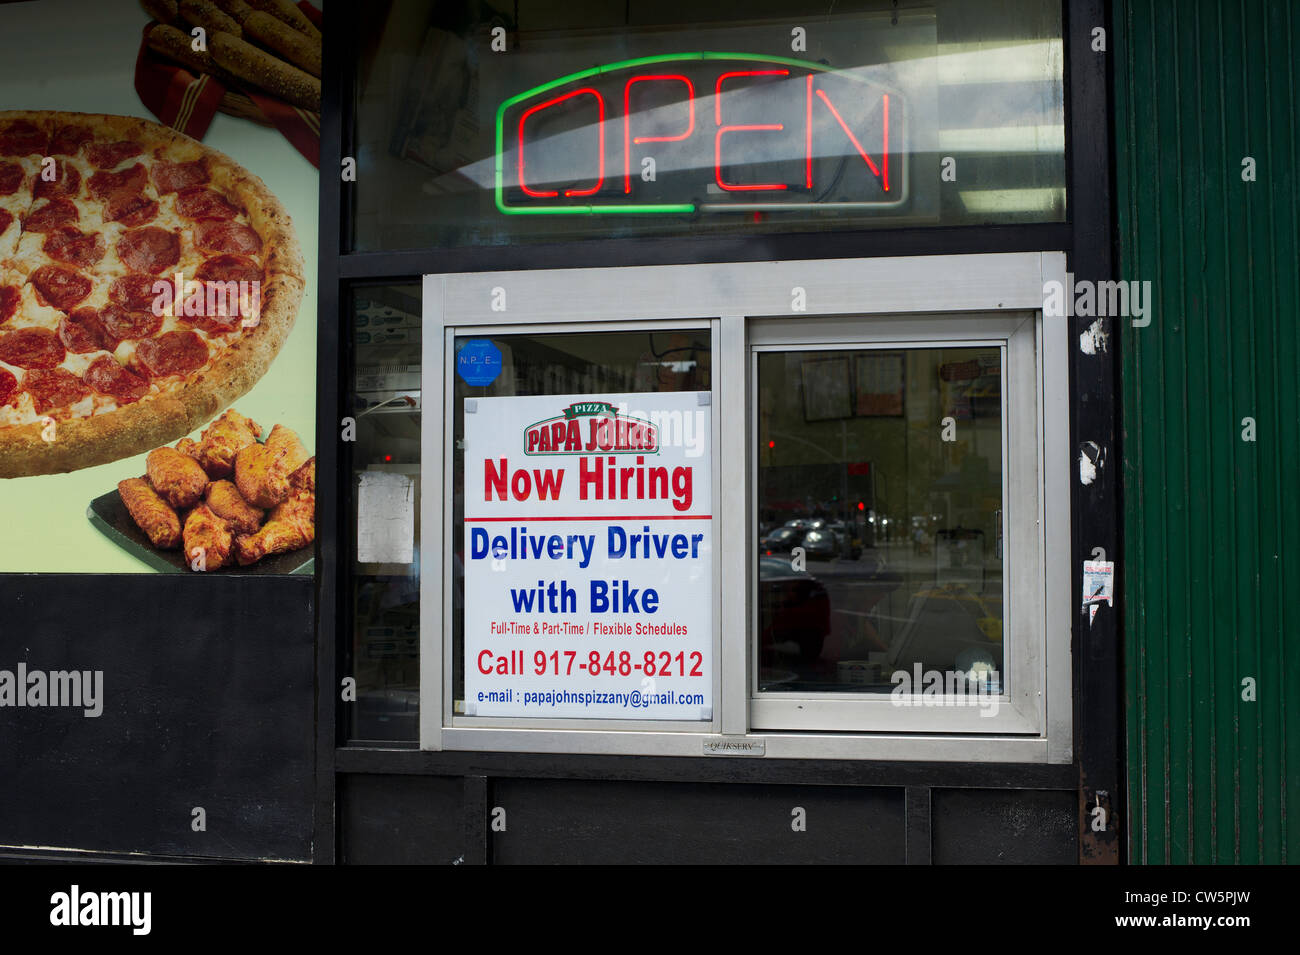 a hiring sign for a delivery driver with bike in a window of a papa johns pizza franchise